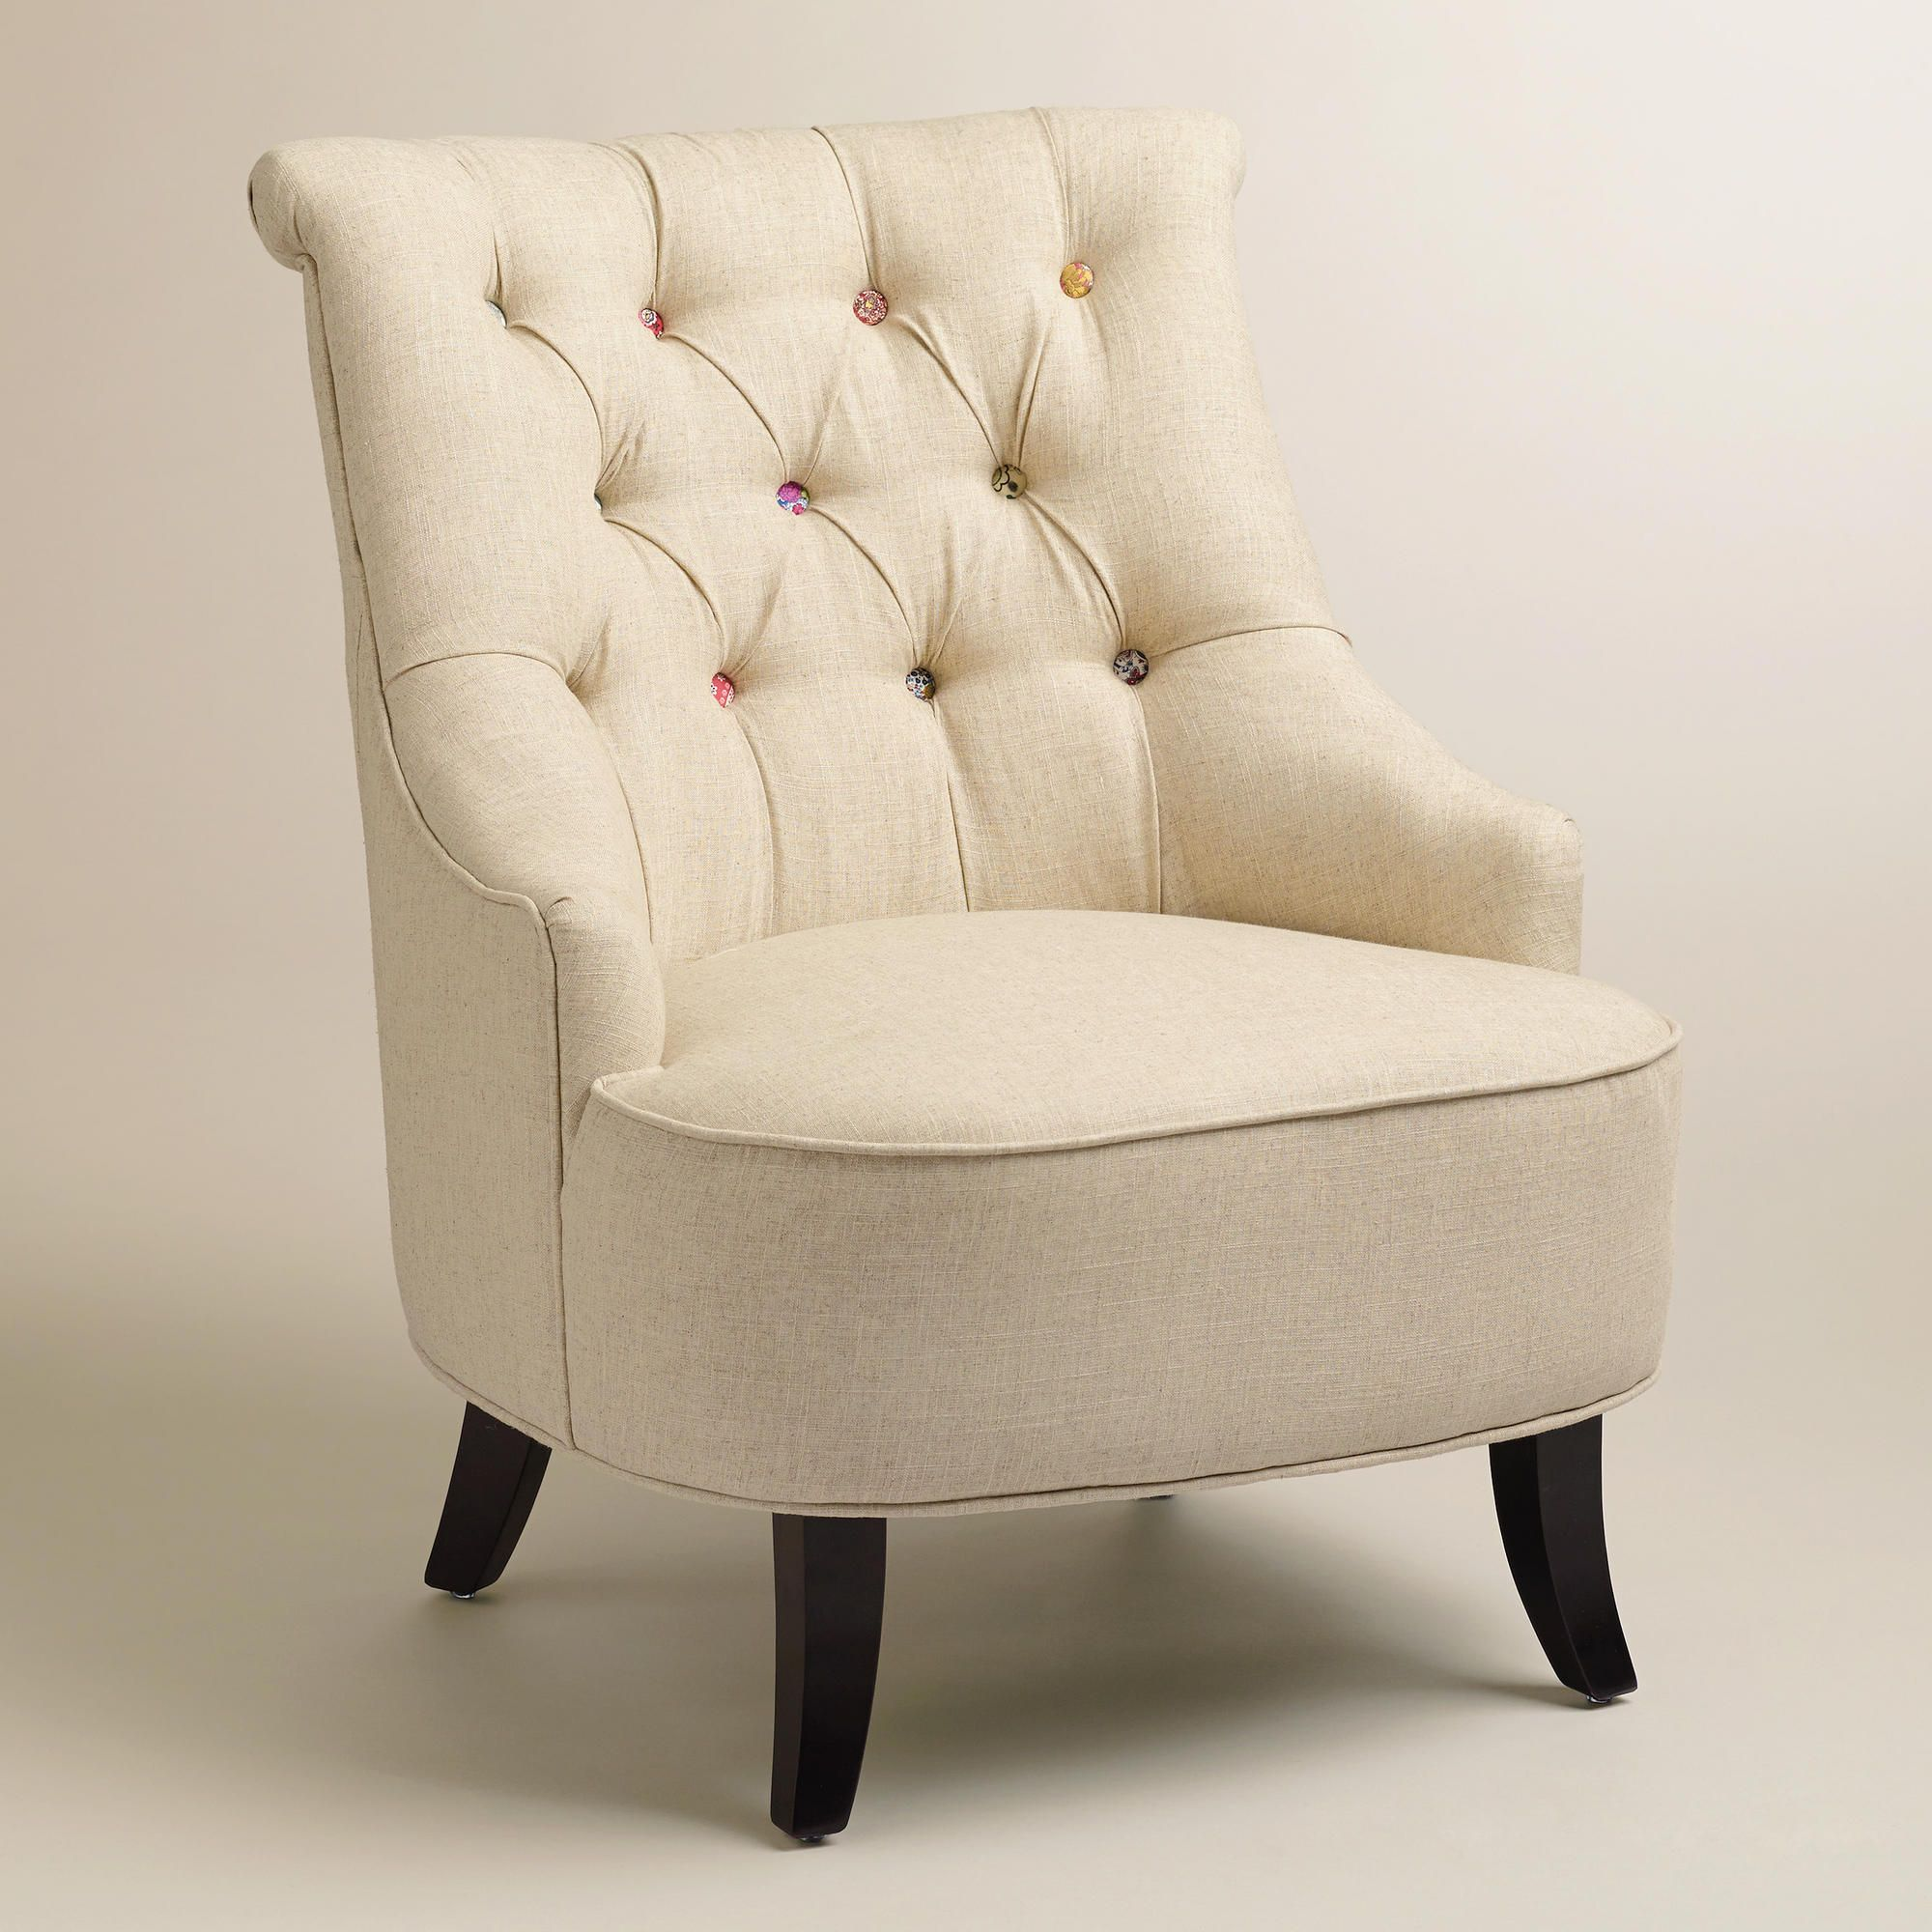 A Source List Of More Than 20 AFFORDABLE Accent Chairs By Designer Trapped  In A Lawyeru0027s Body.